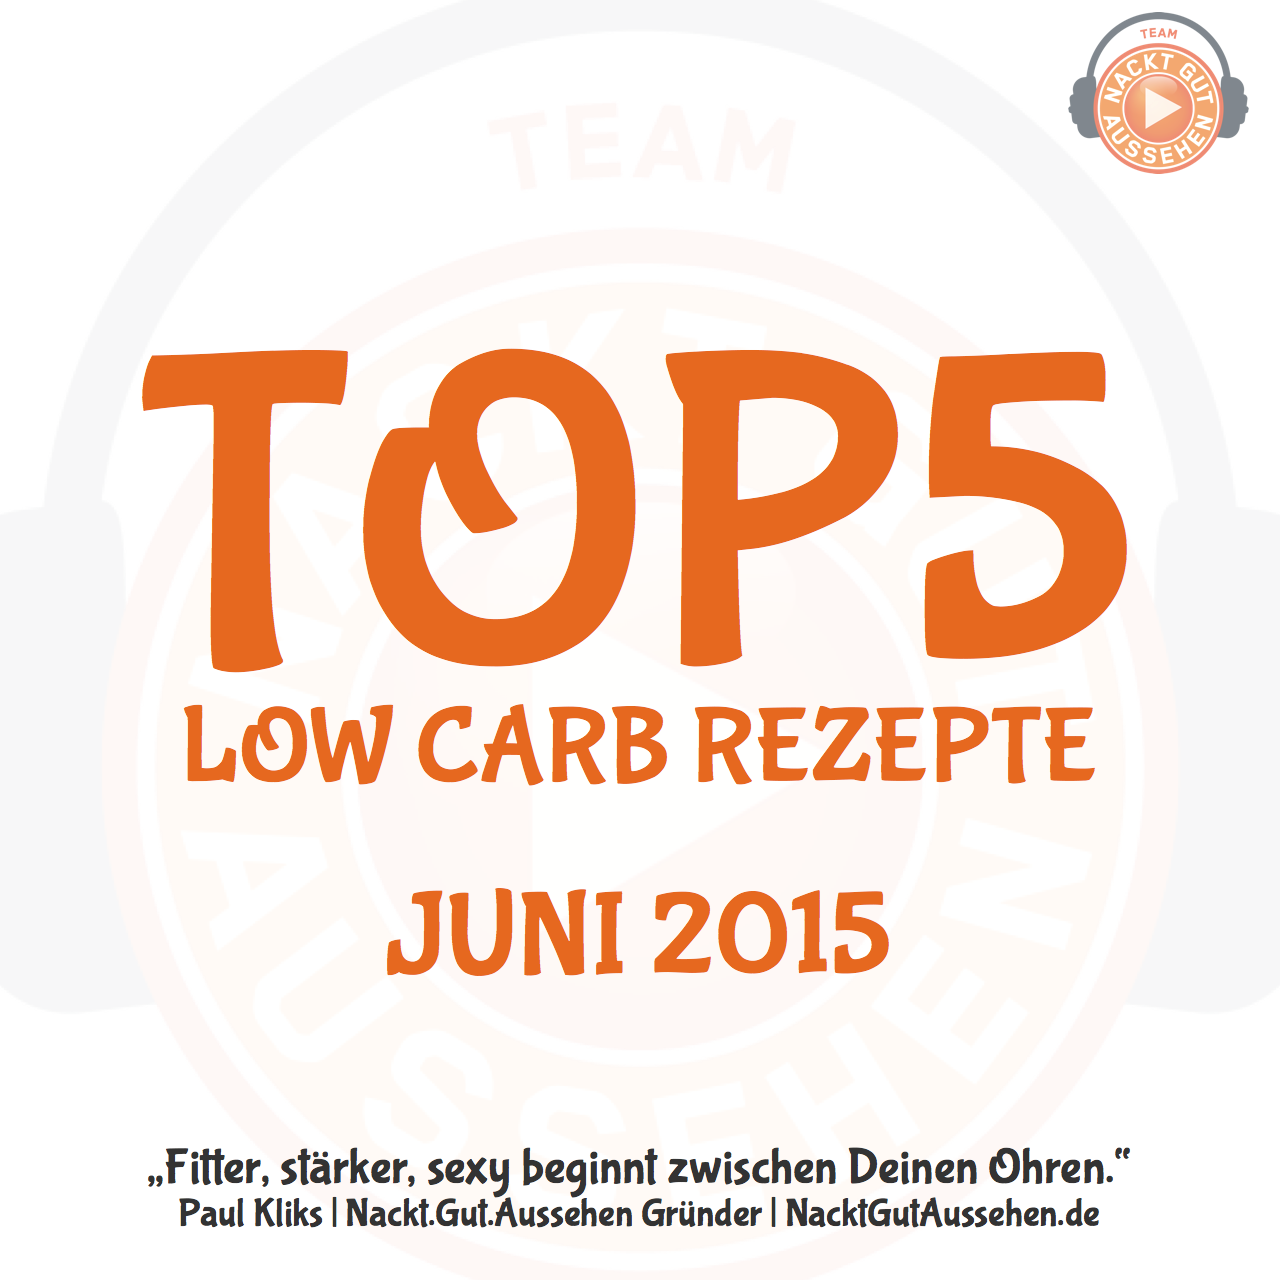 TOP5 Low Carb Rezepte Juni 2015